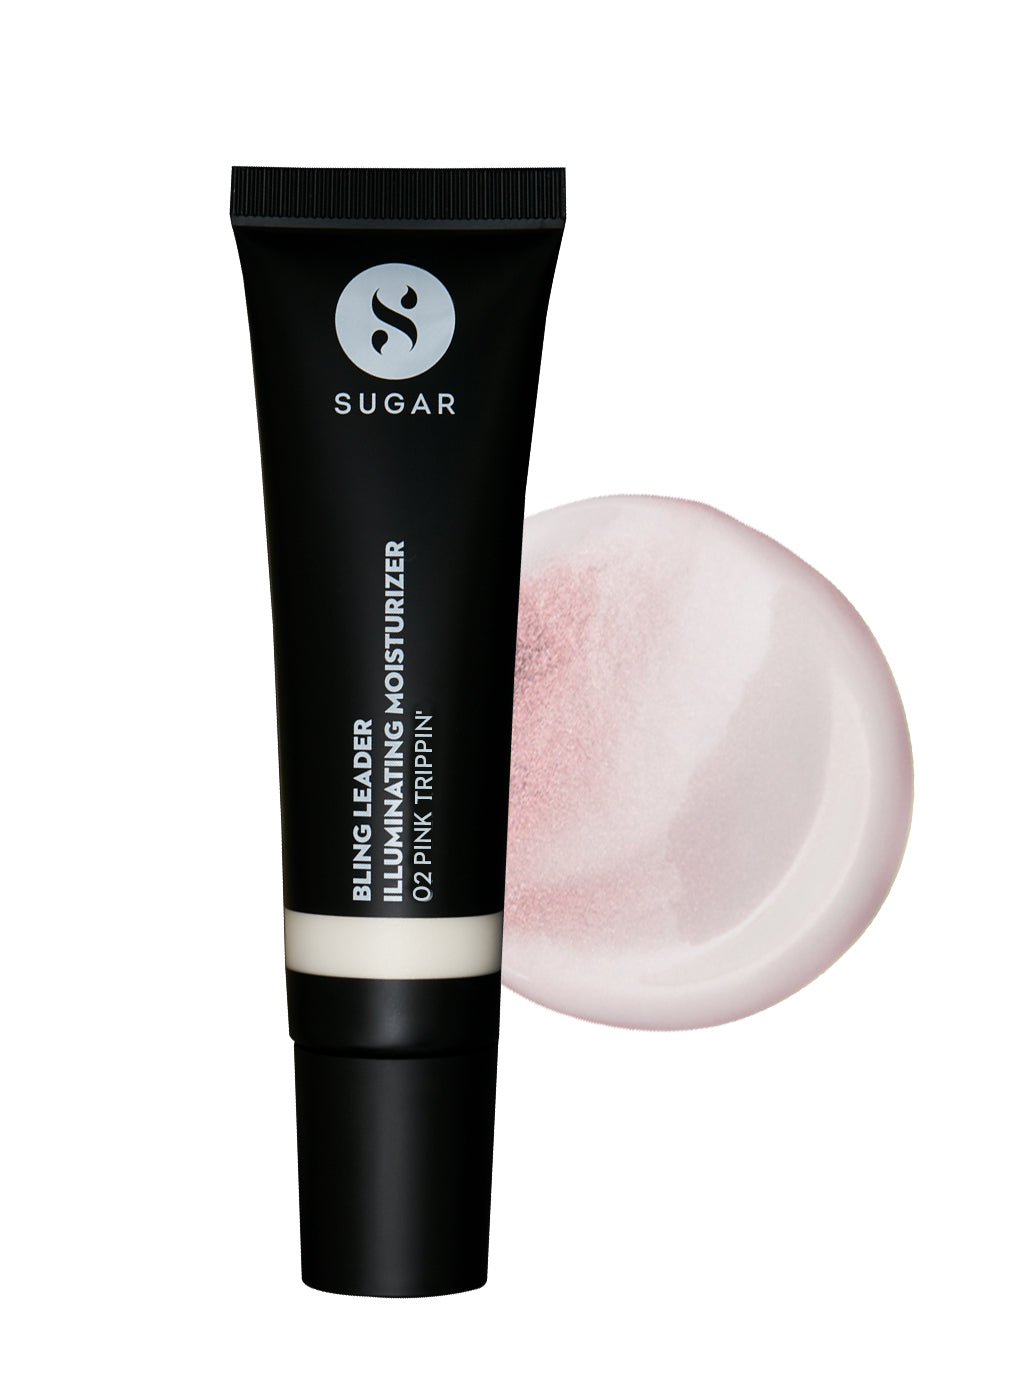 SUGAR Bling Leader Illuminating Moisturizer - 02 Pink Trippin' - Cool pink with a pearl finish